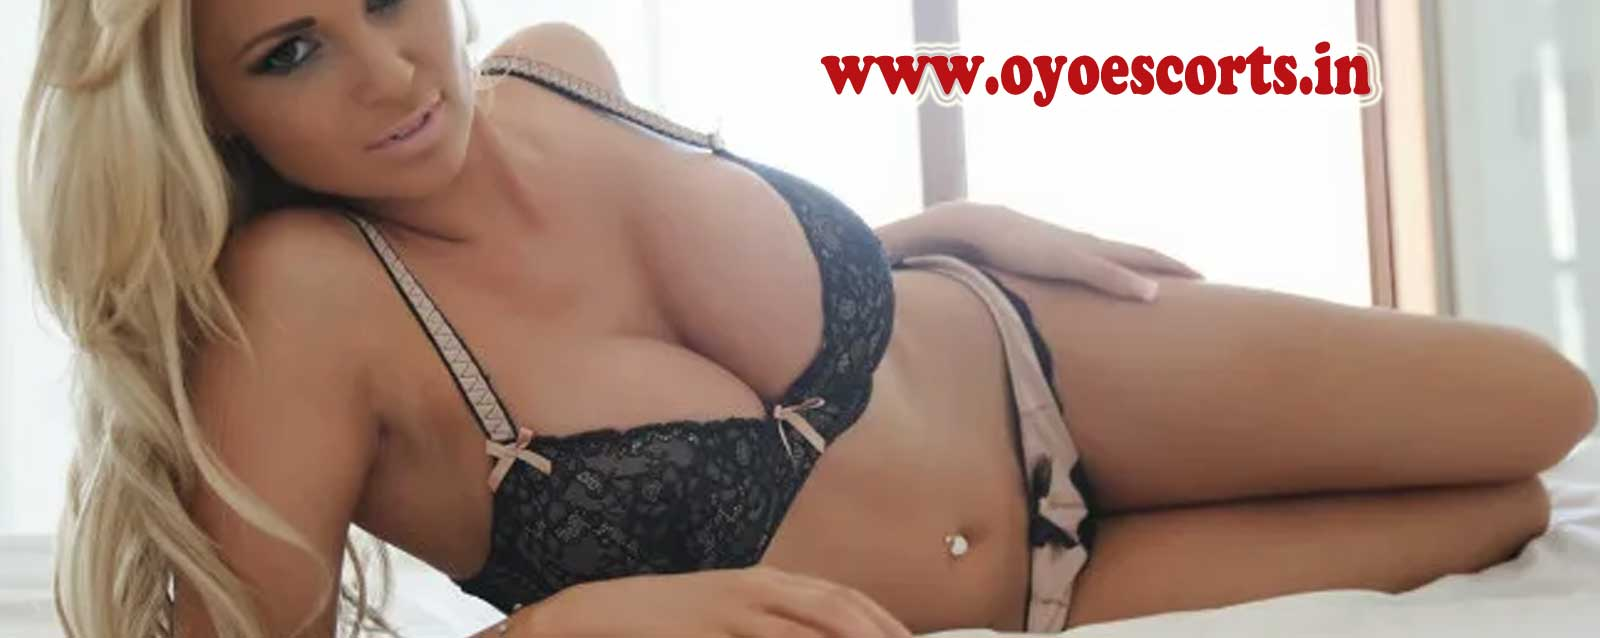 Bangalore escorts services